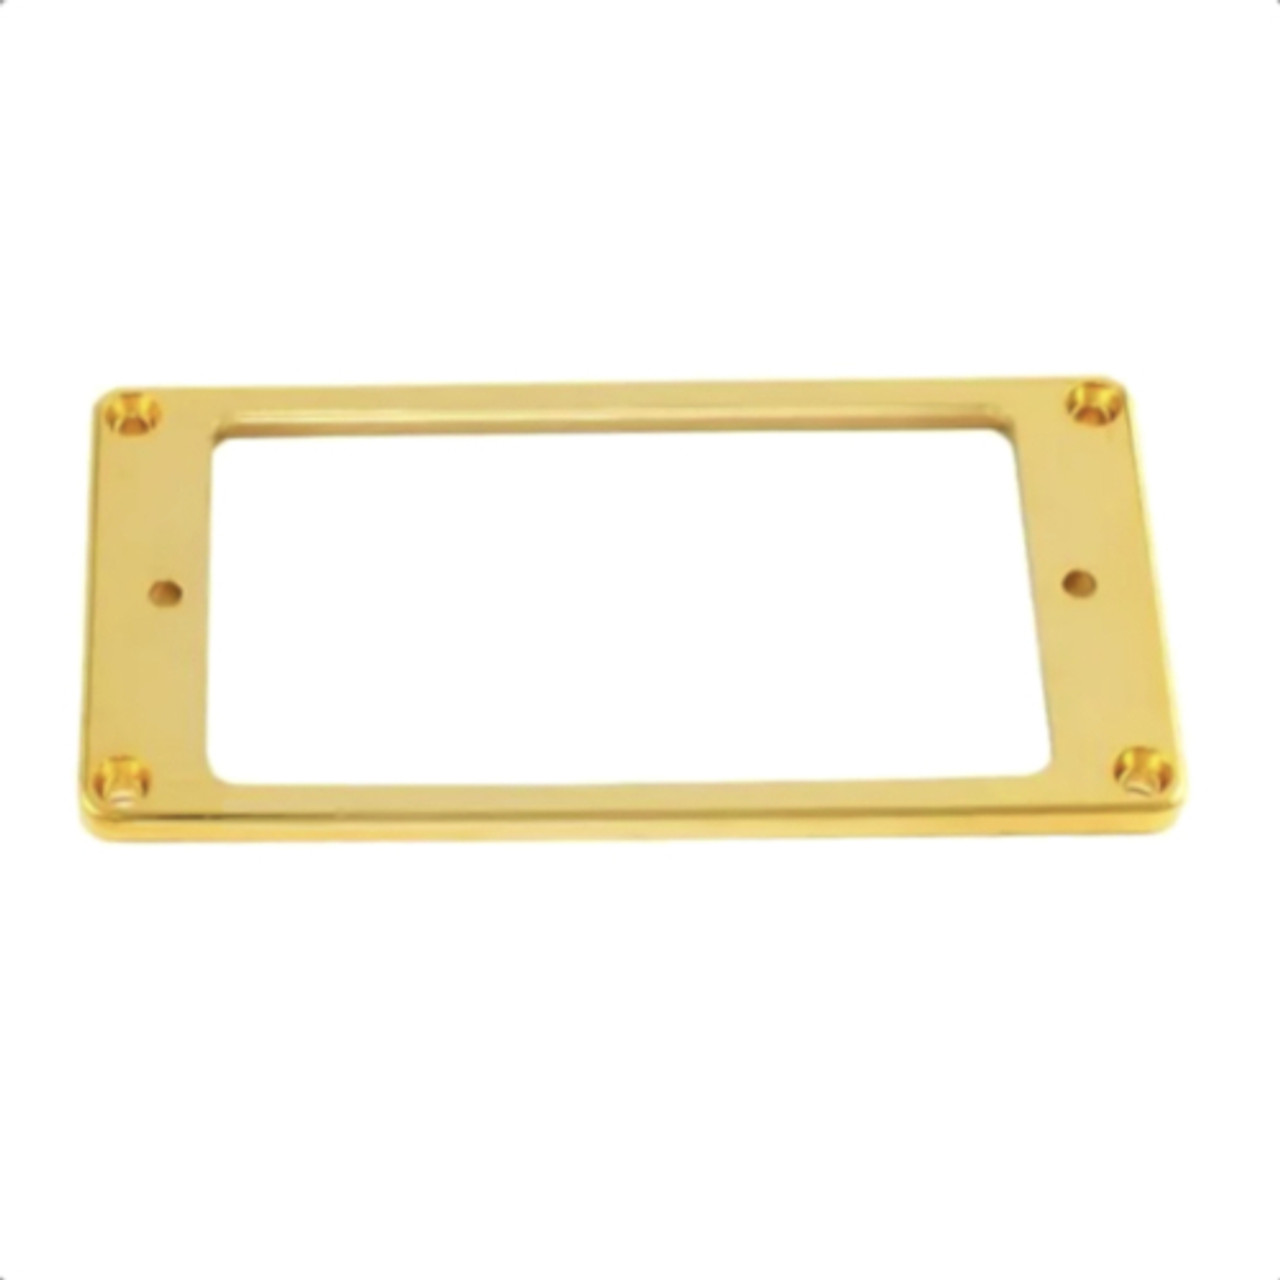 métal gold NEW Mounting ring pour humbucker plat